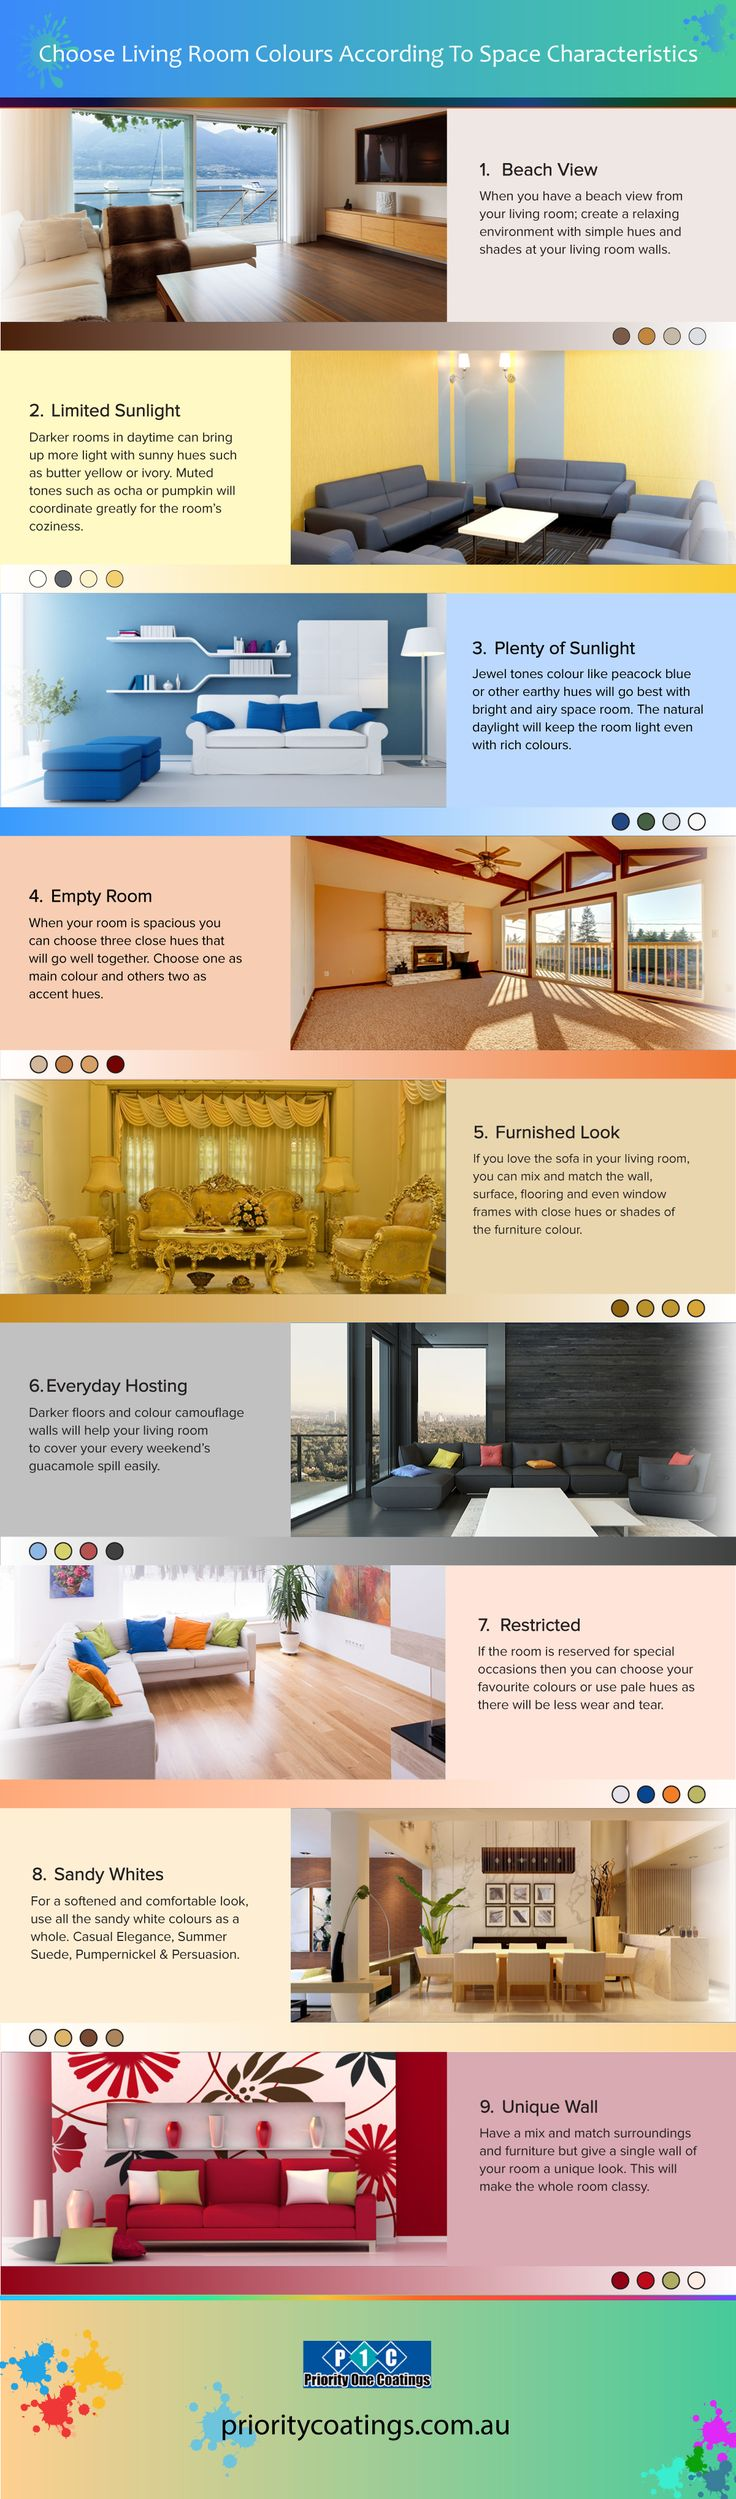 Get The Perfect Living Room Paint Colors According To The Surroundings